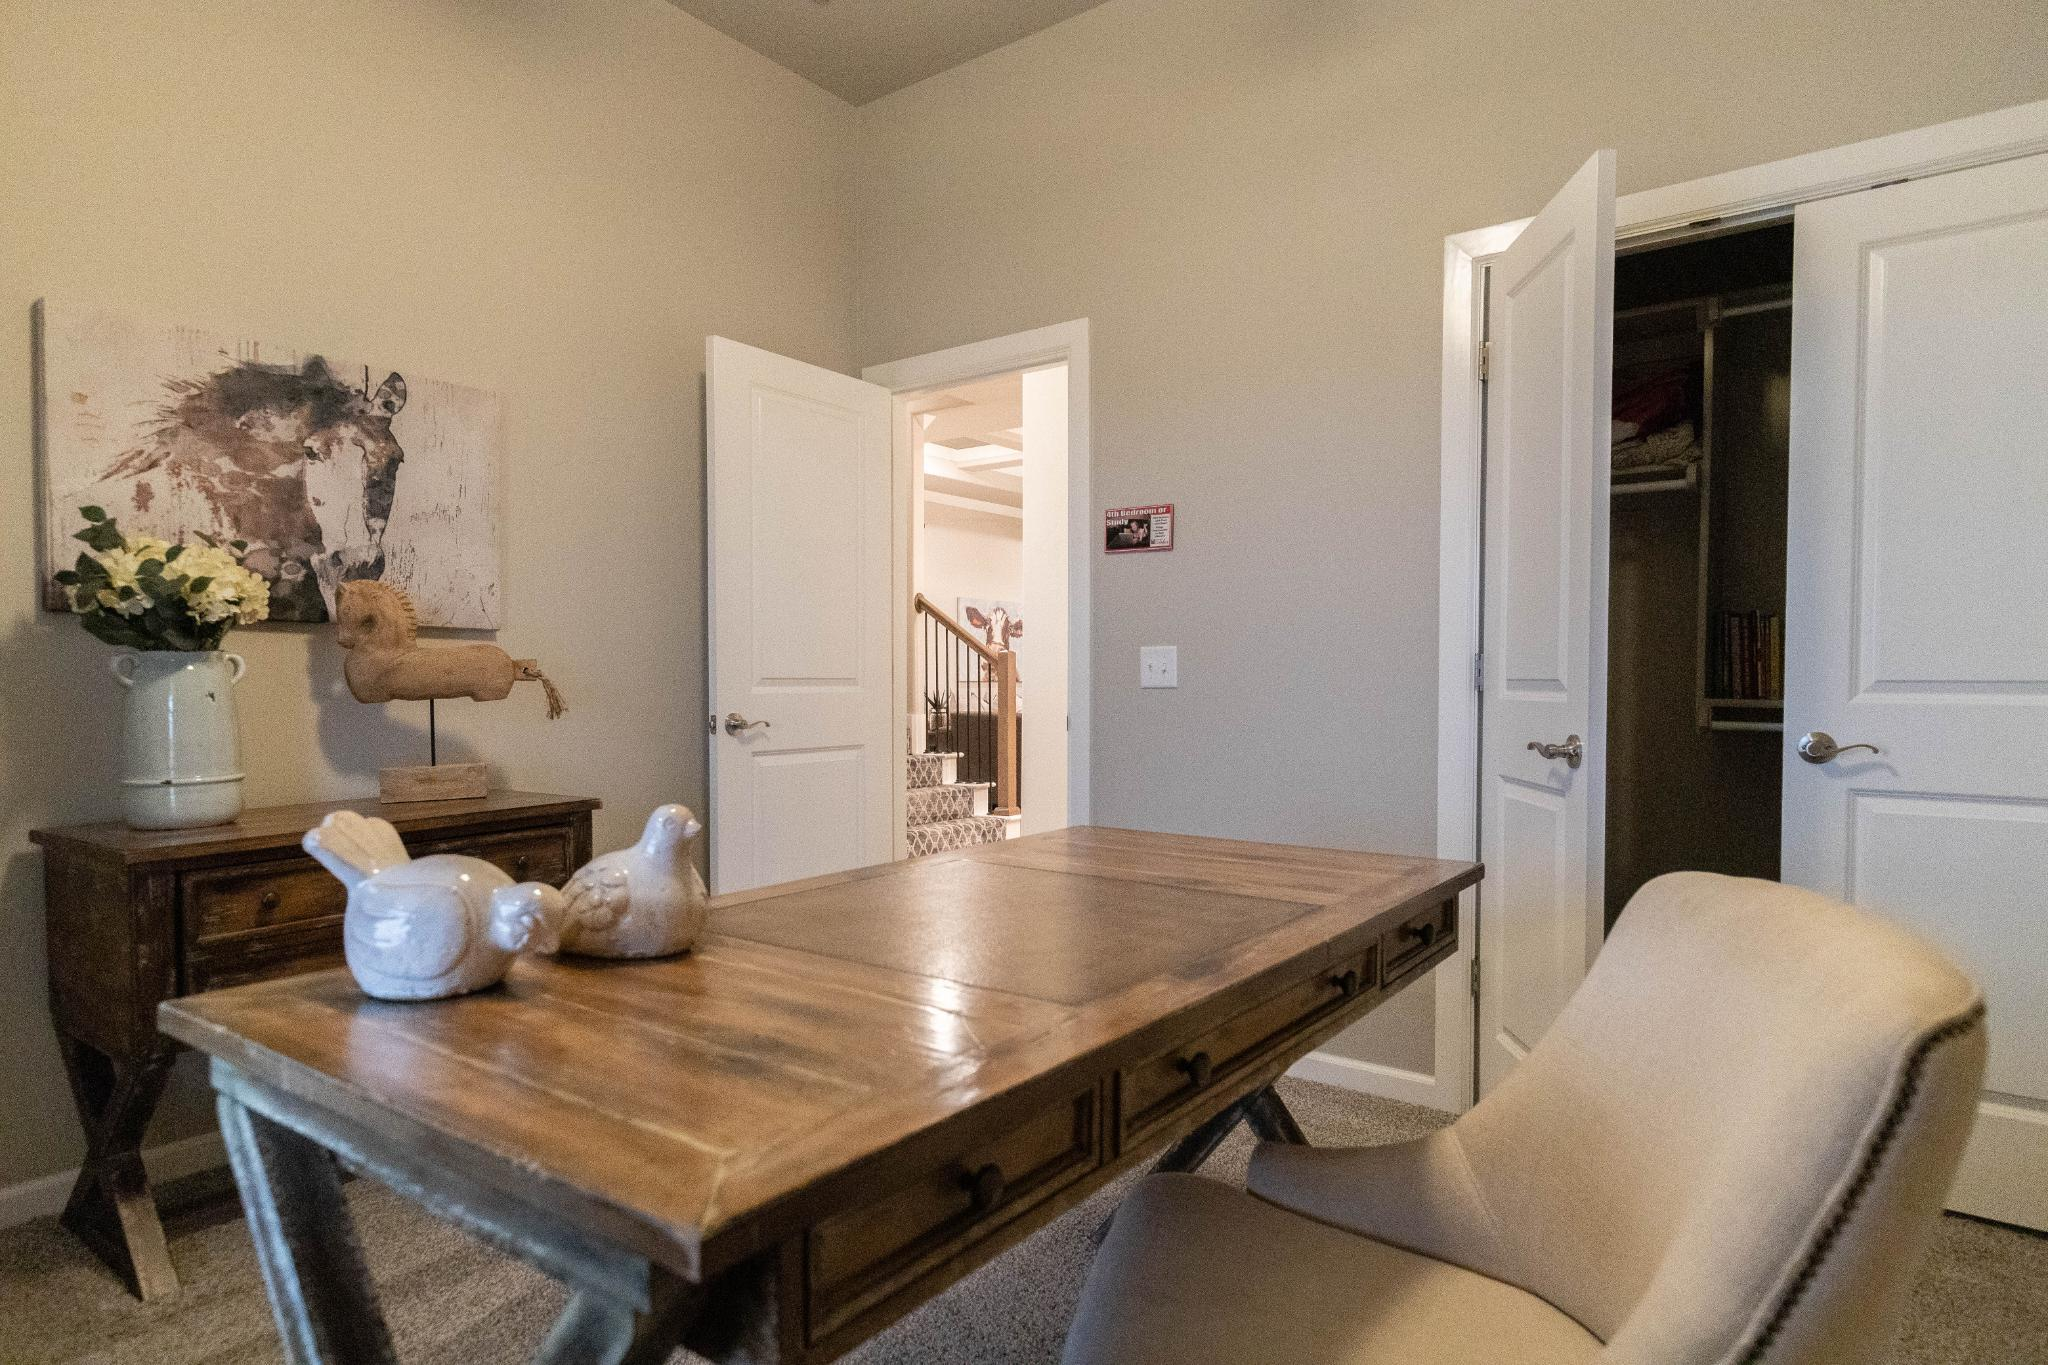 Kitchen featured in the Shiloh Bonus Room 2 By Homes By Taber in Oklahoma City, OK